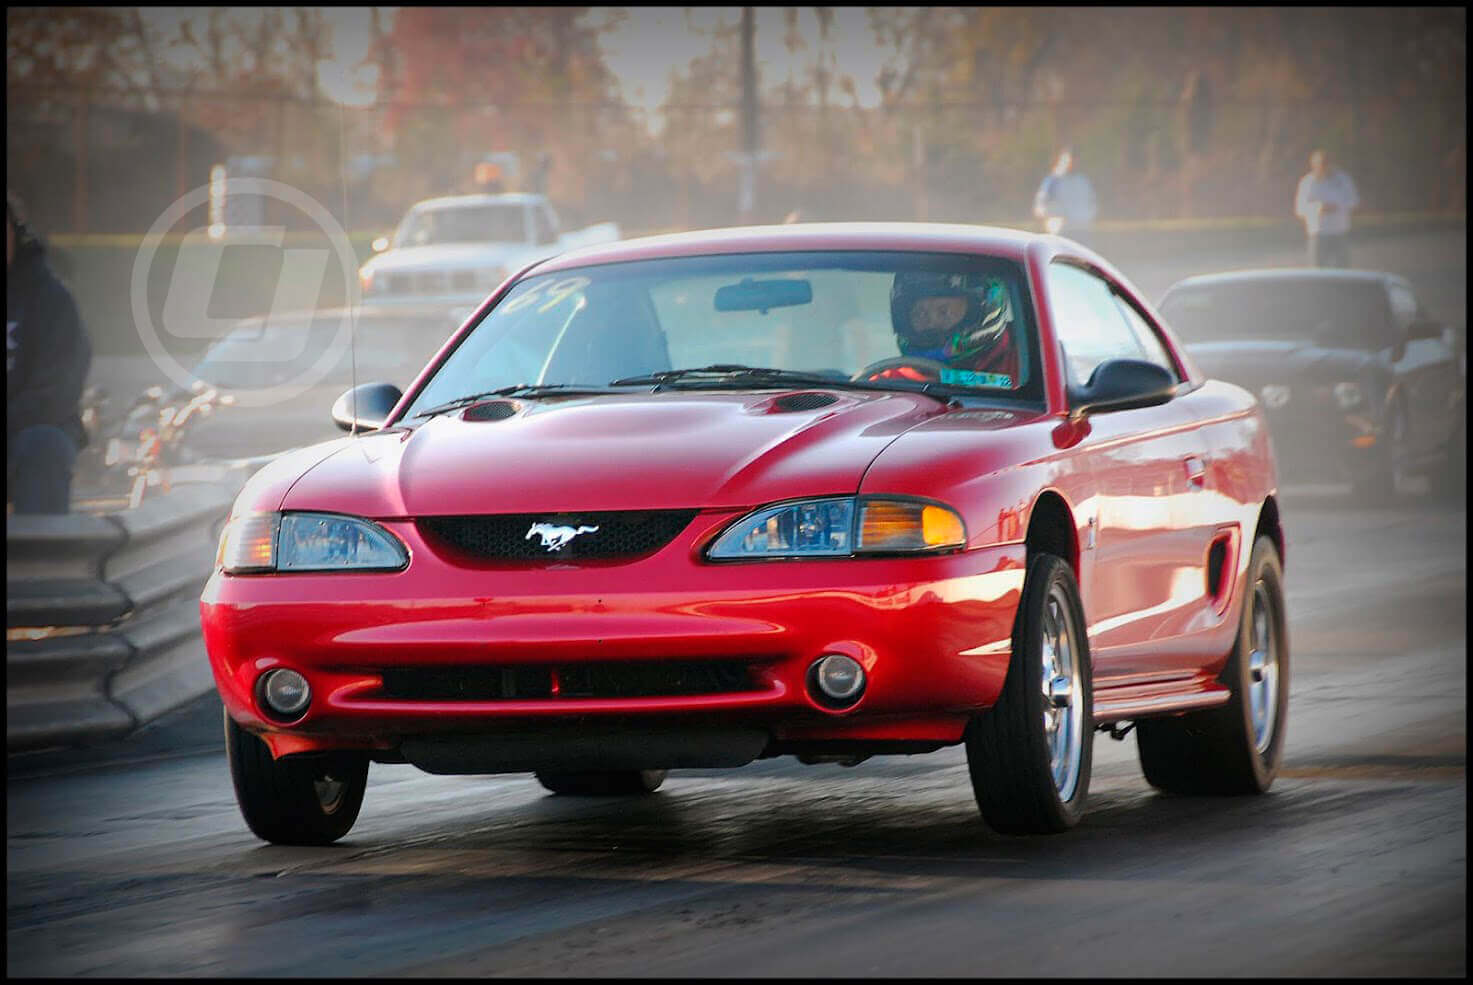 hight resolution of a well maintained red mustang